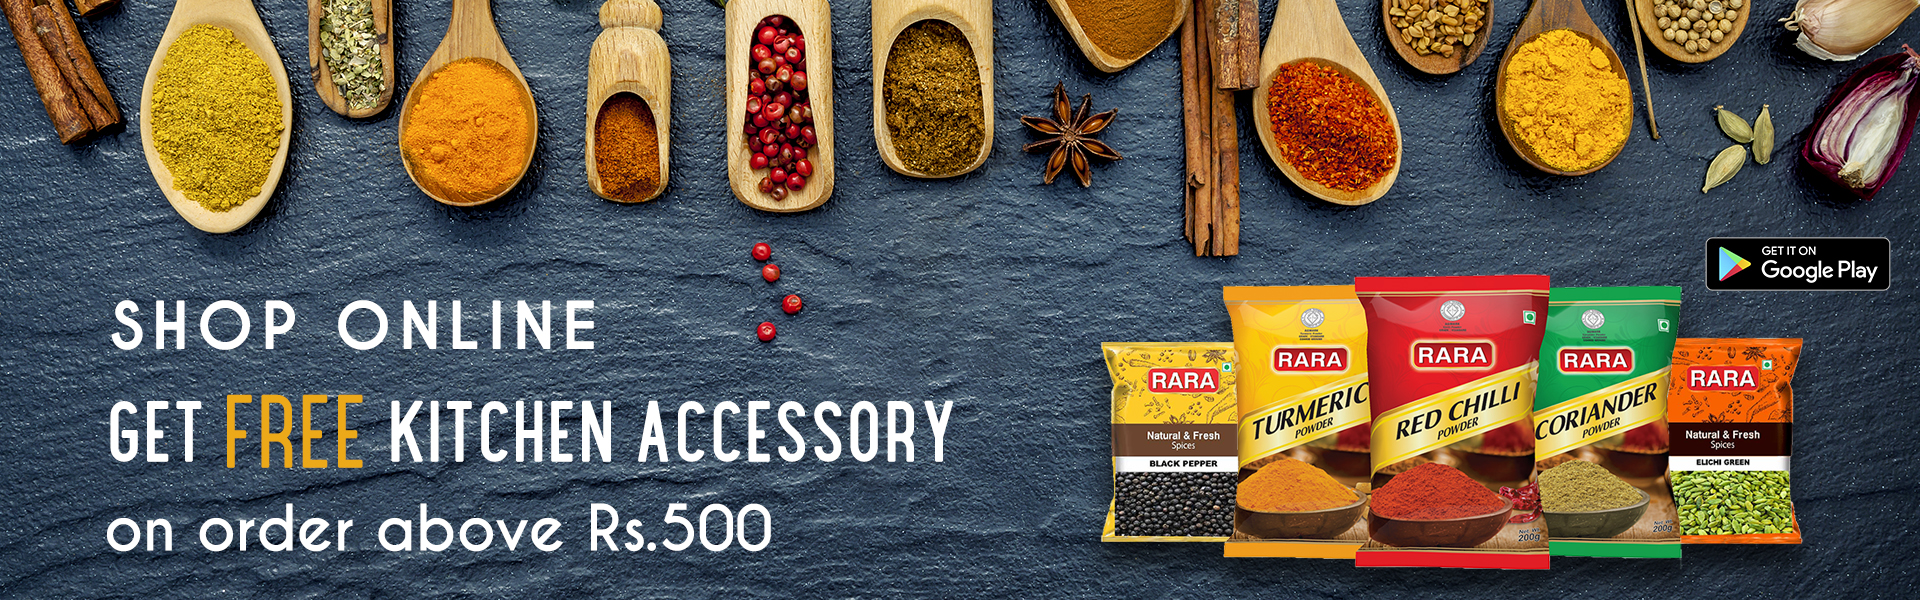 Rara Spices Special Offer